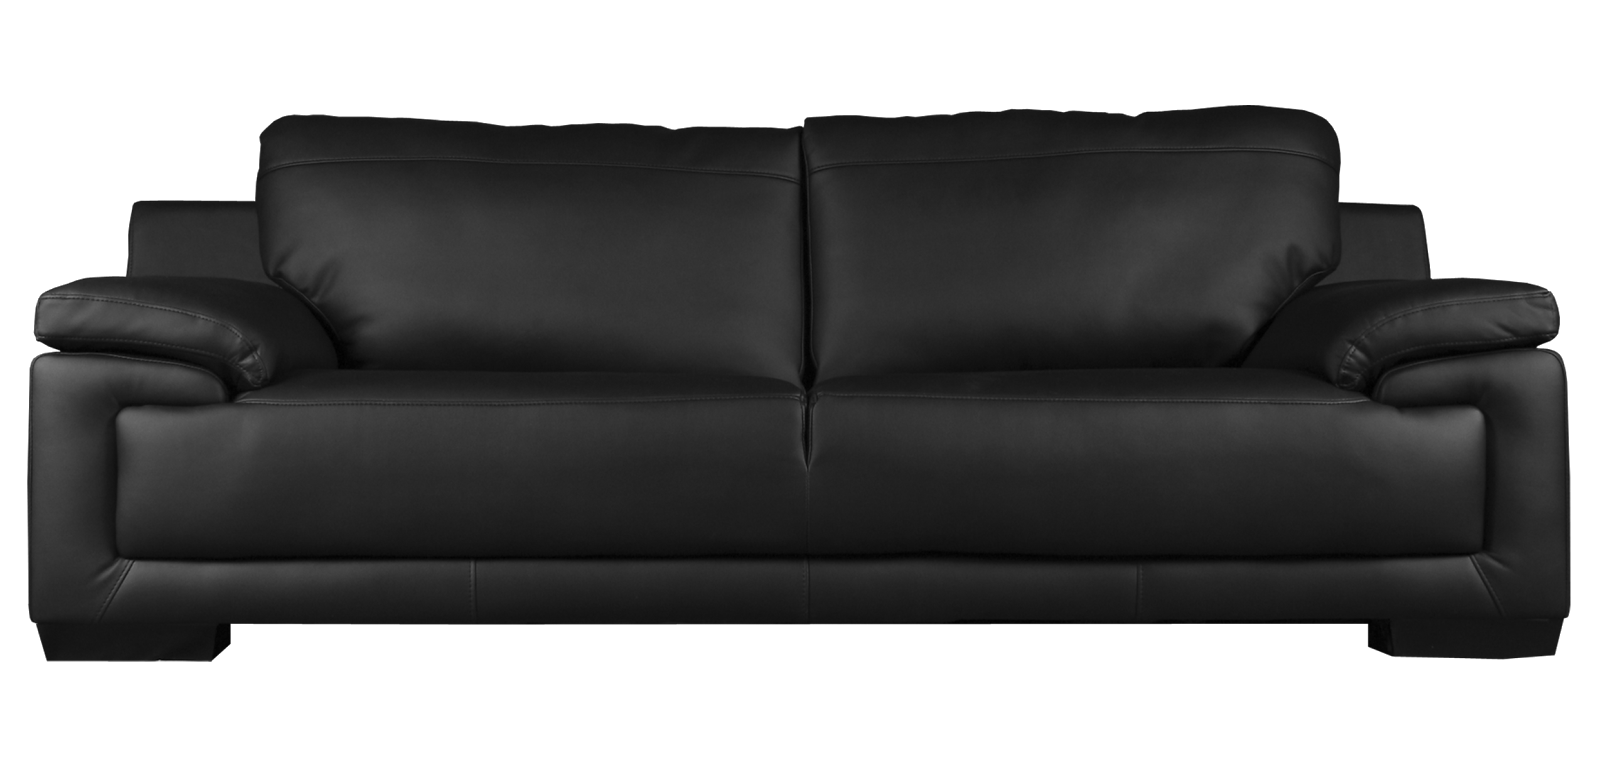 Transparent couch black. Sofa hd png images